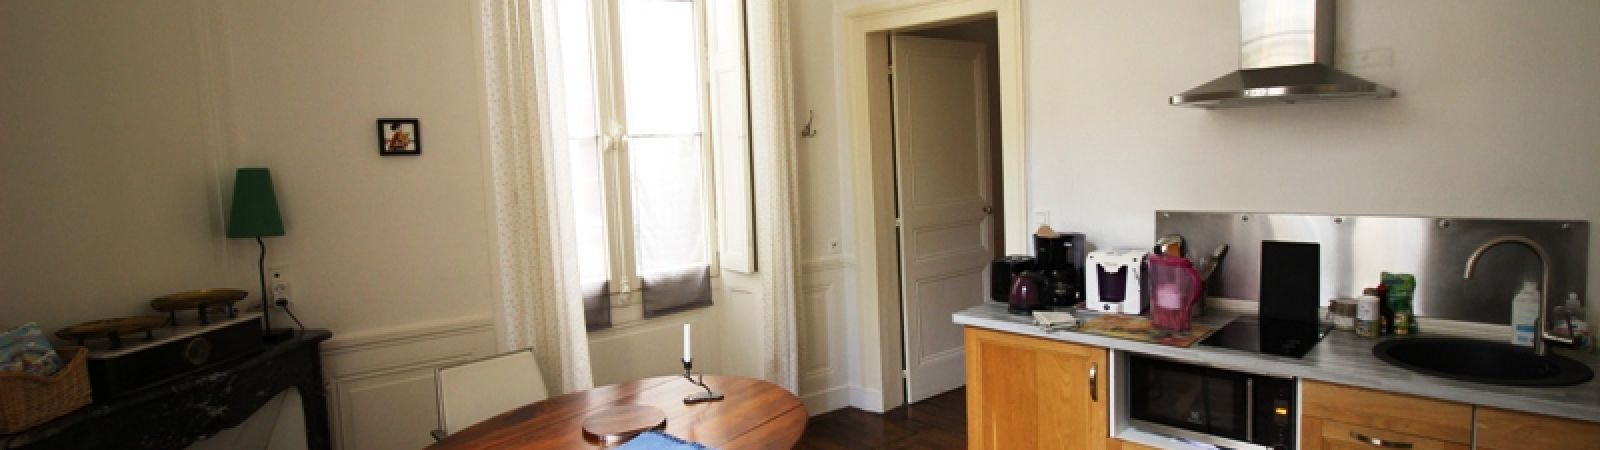 photo 4: Ensemble de 6 appartements